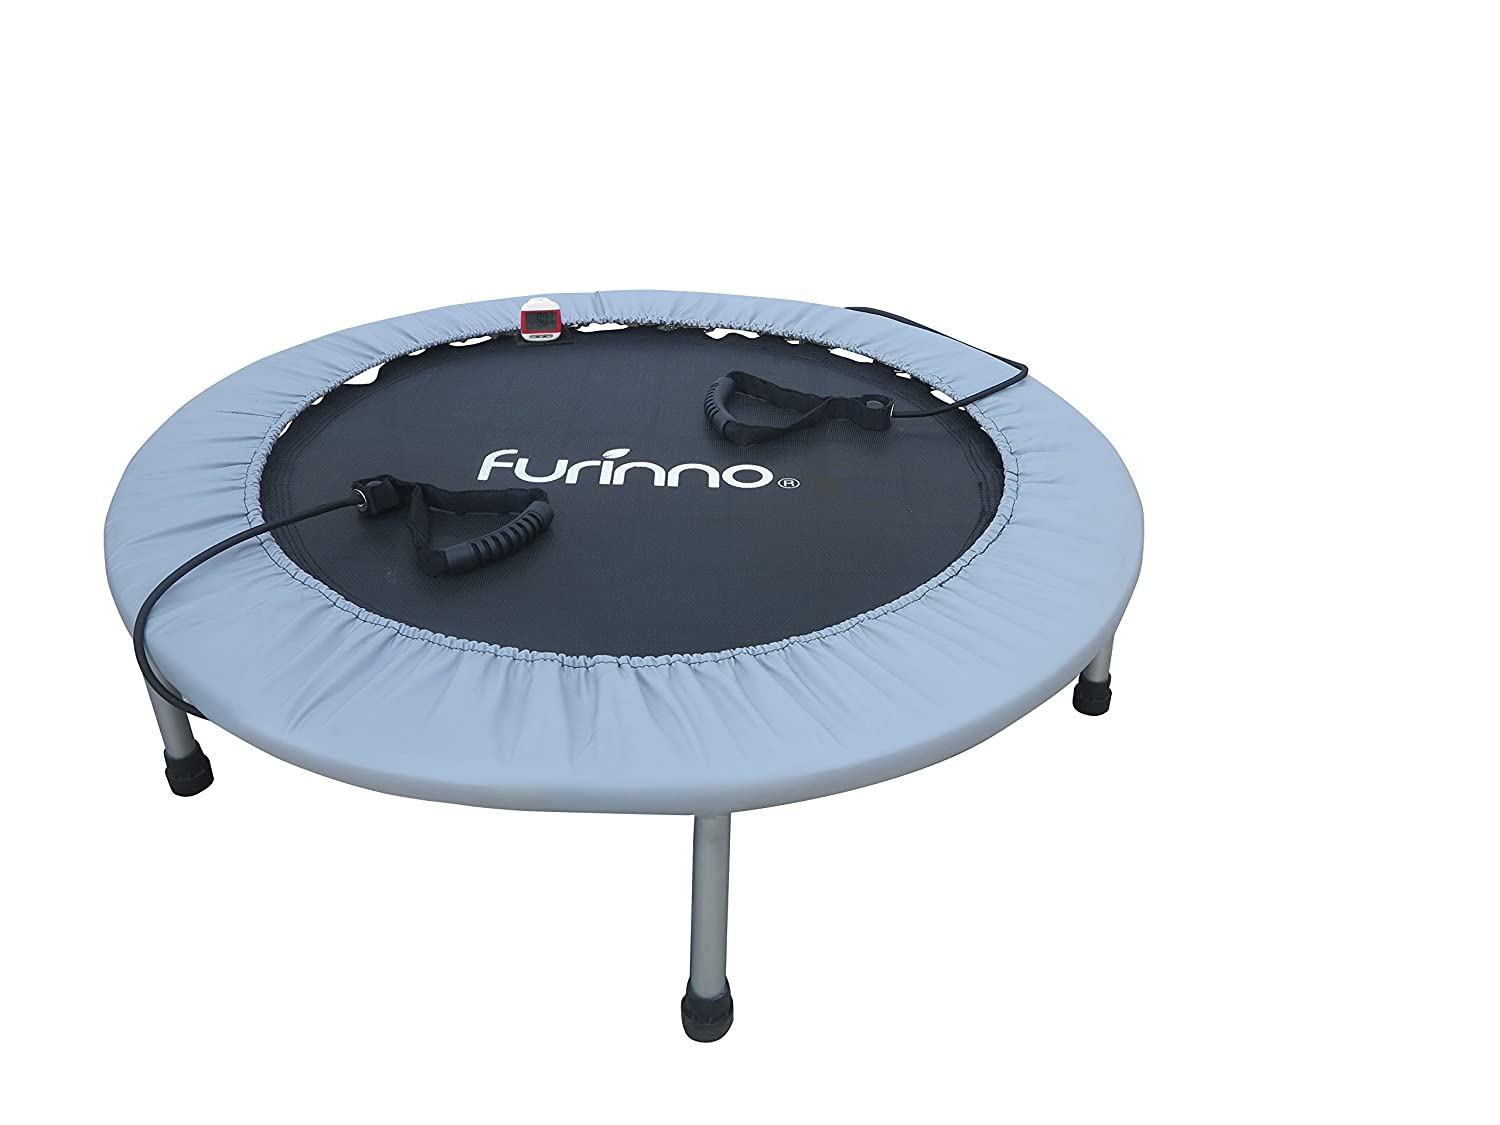 Furinno FT7138MR 38 Trampoline with Monitor & Resistance Tube